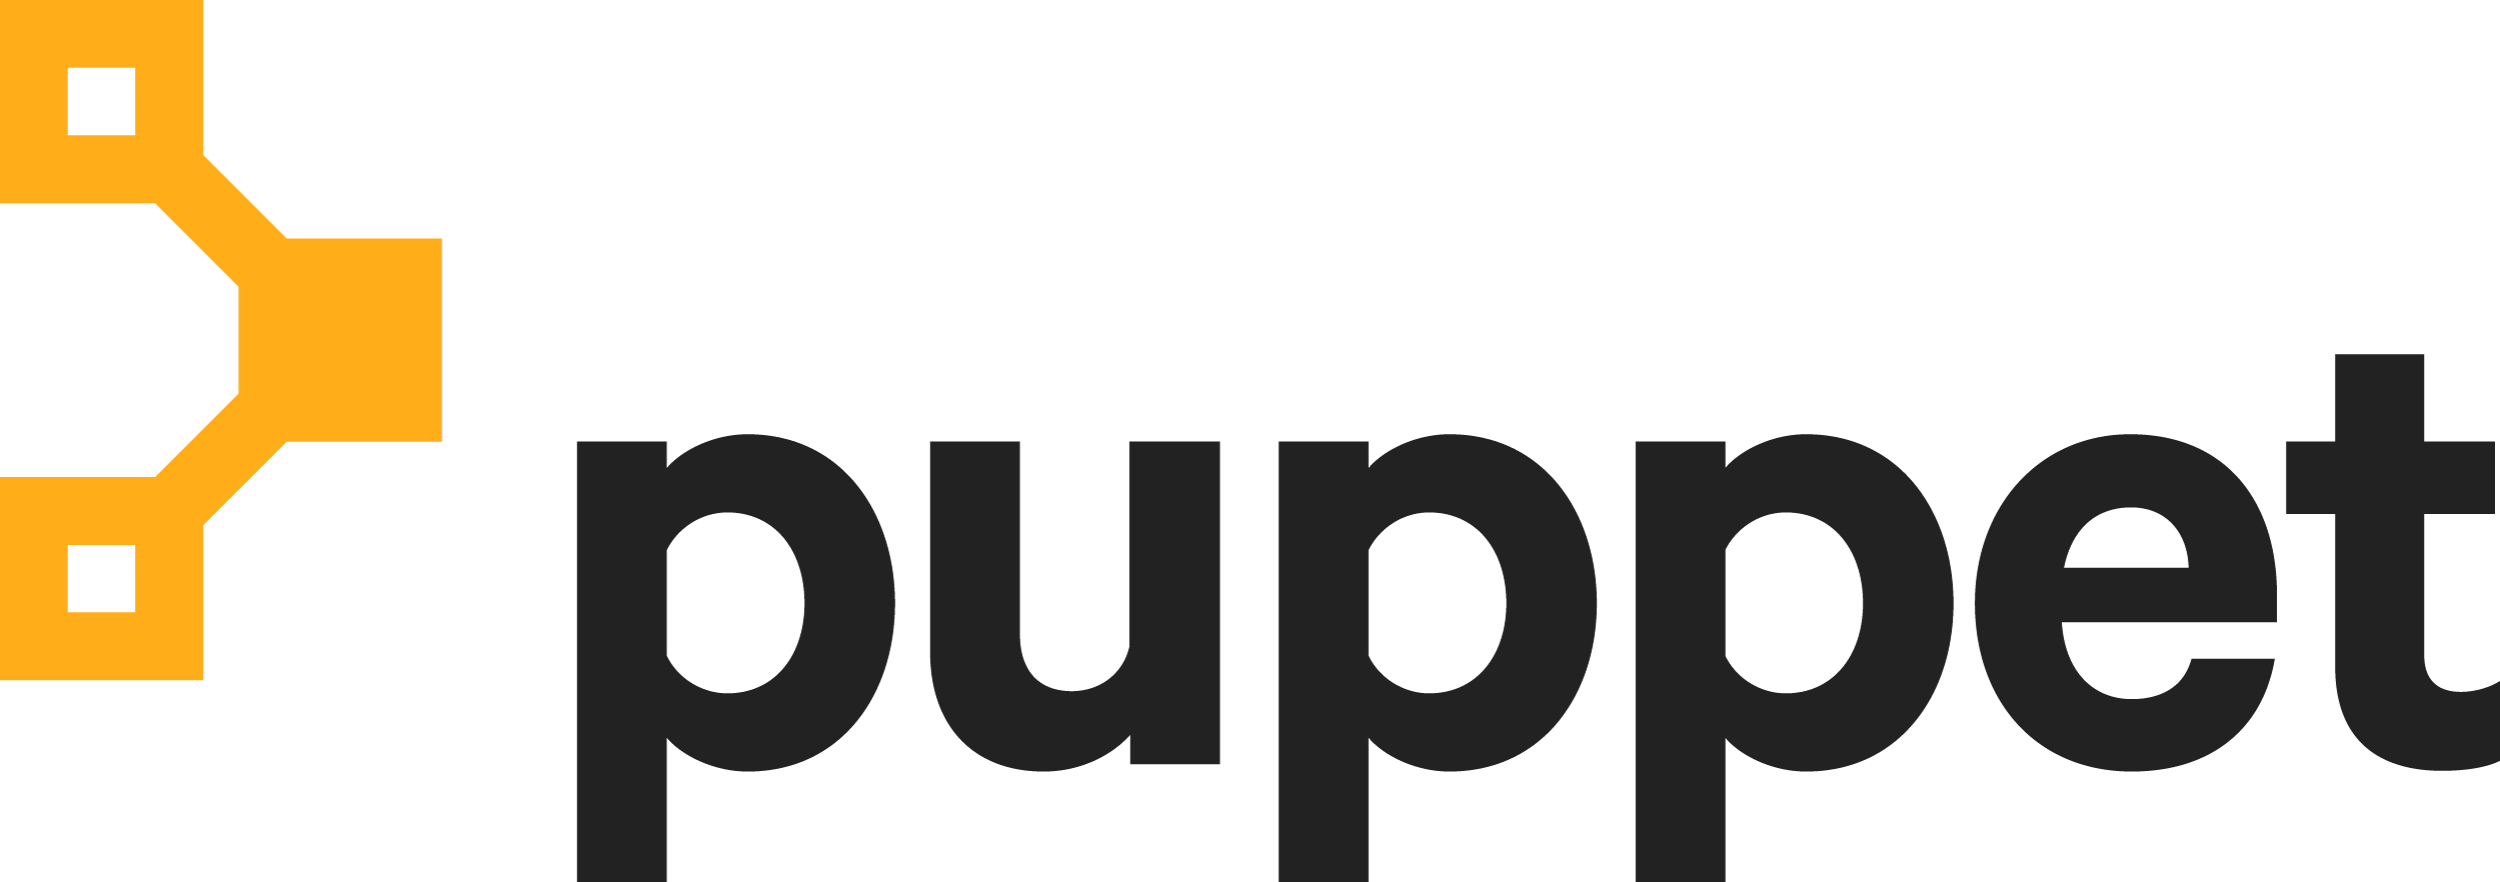 Elegant-Puppet-Labs-Logo-64-For-Your-Logo-Creater-with-Puppet-Labs-Logo.jpg